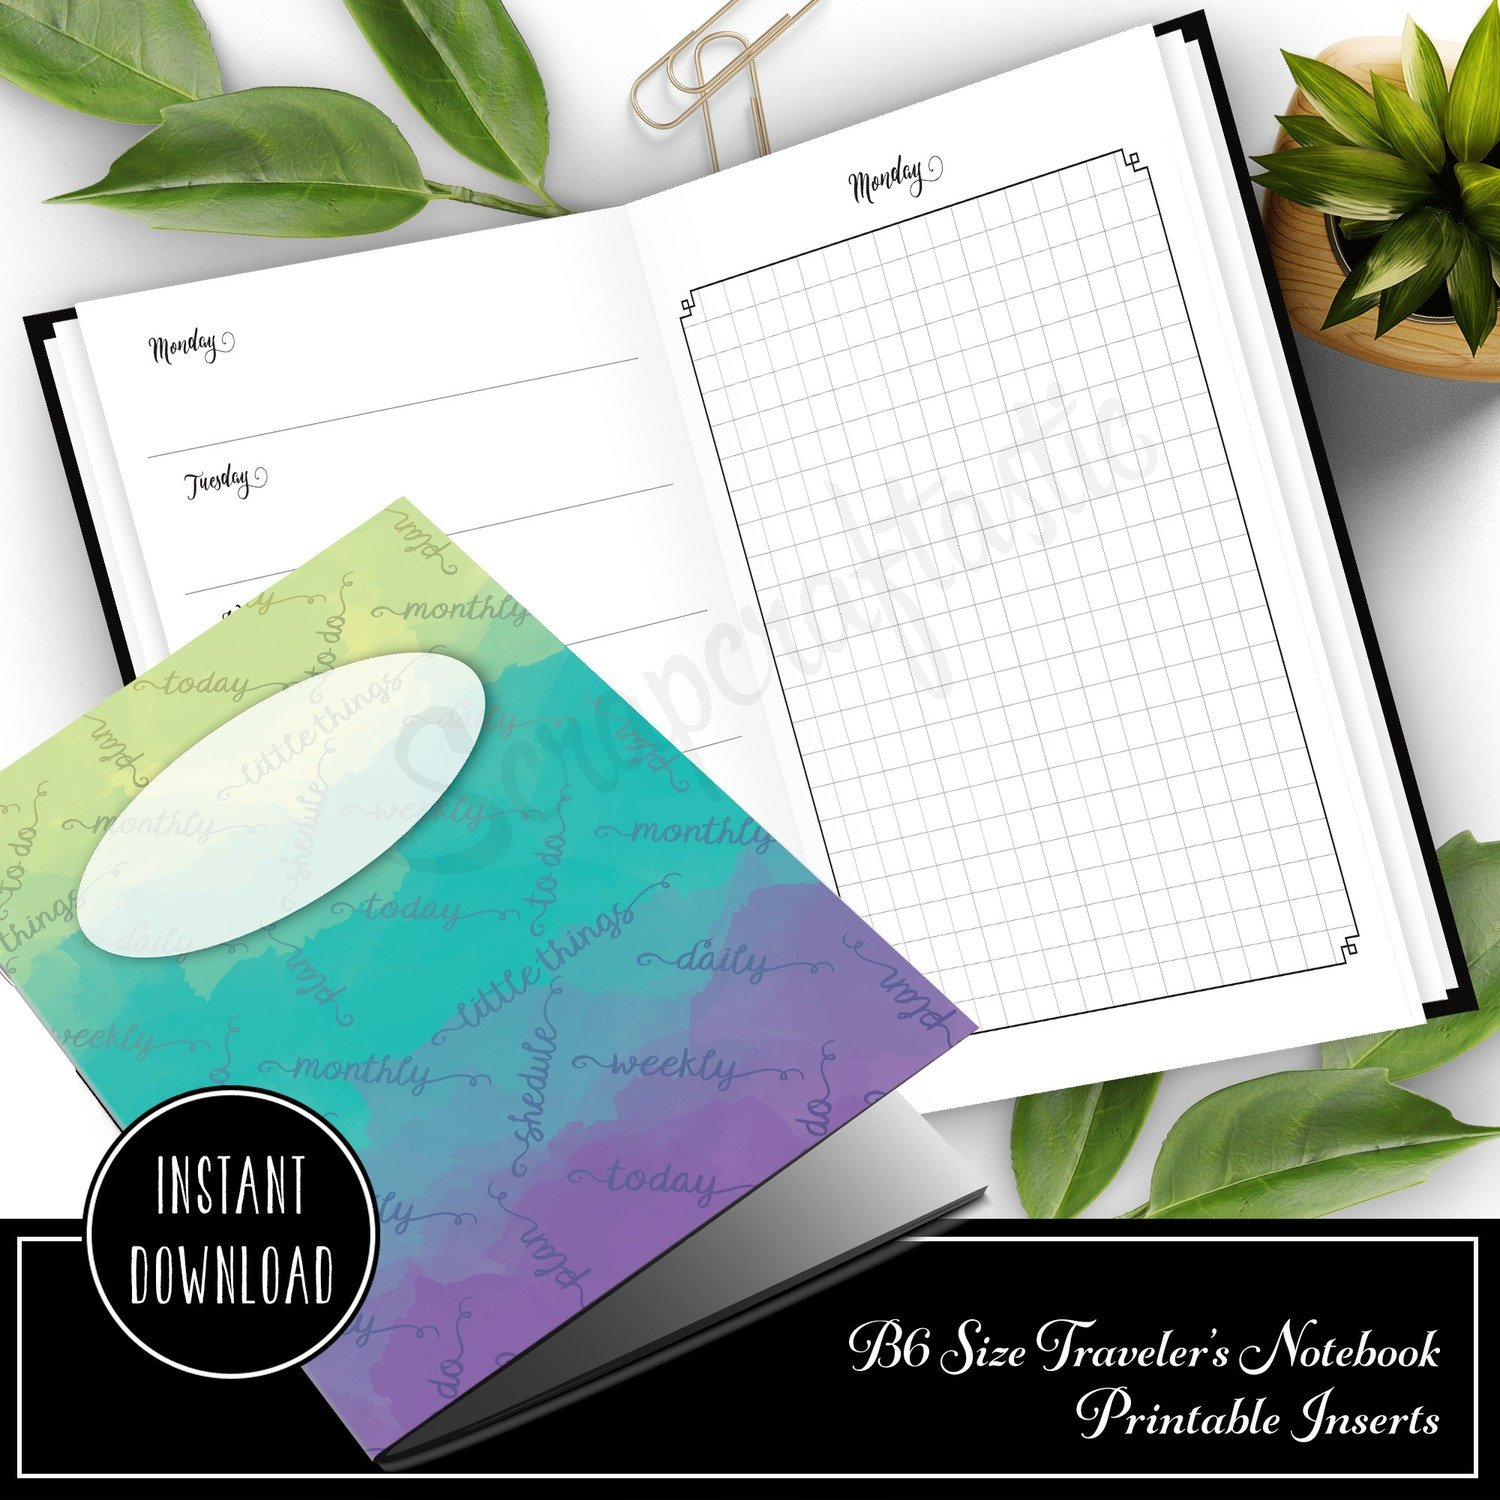 Full Month Notebook: Daily B6 Size with MO2P, WO1P Horizontal and DO1P Daily Grid Pages Printable